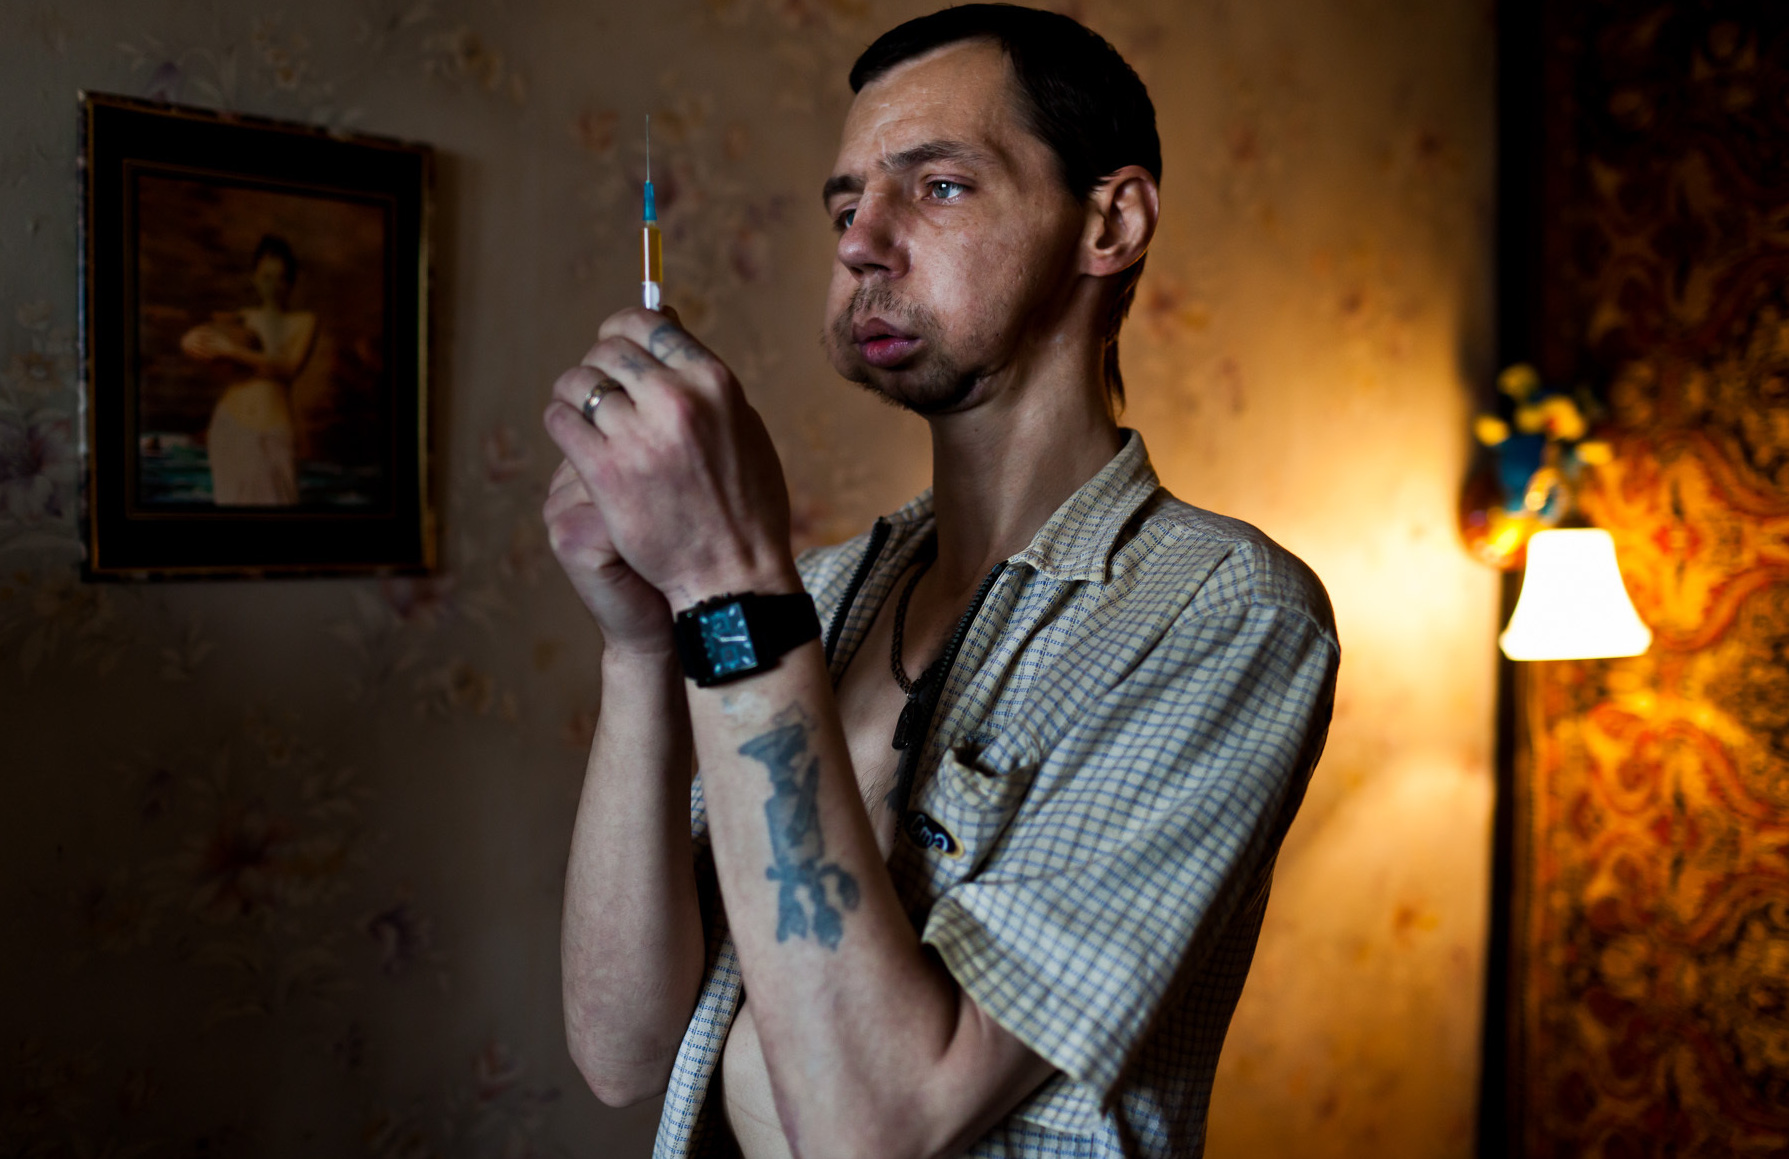 Scary Pictures Of Drug Addicts 5 Abuse Drugcom